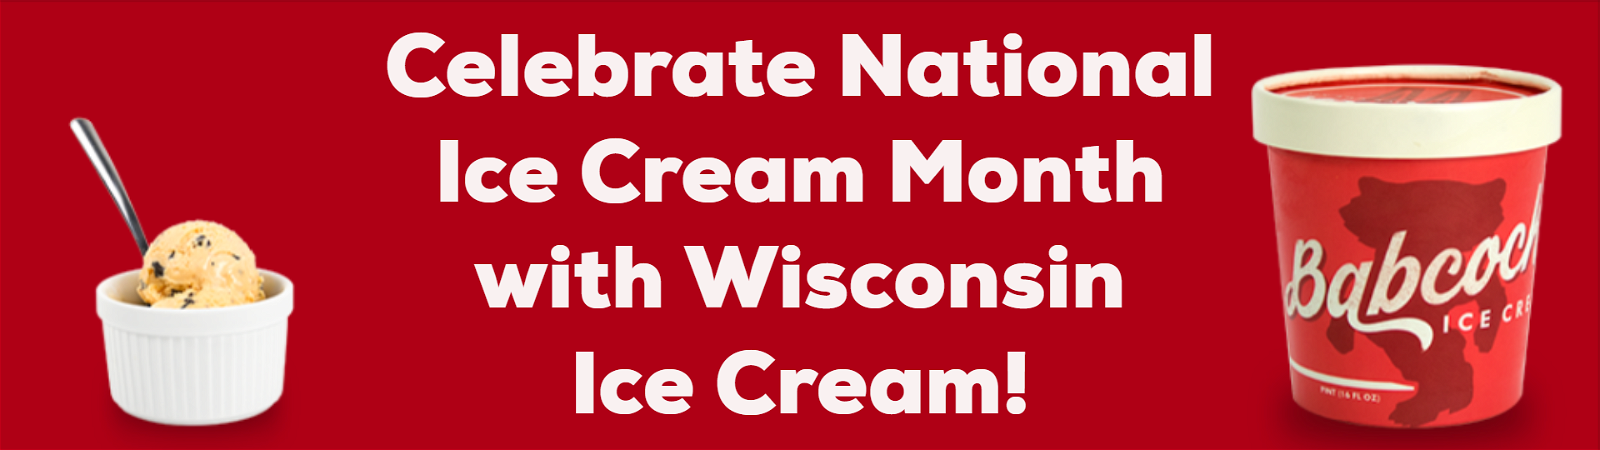 Celebrate National Ice Cream Month with Wisconsin Ice Cream!